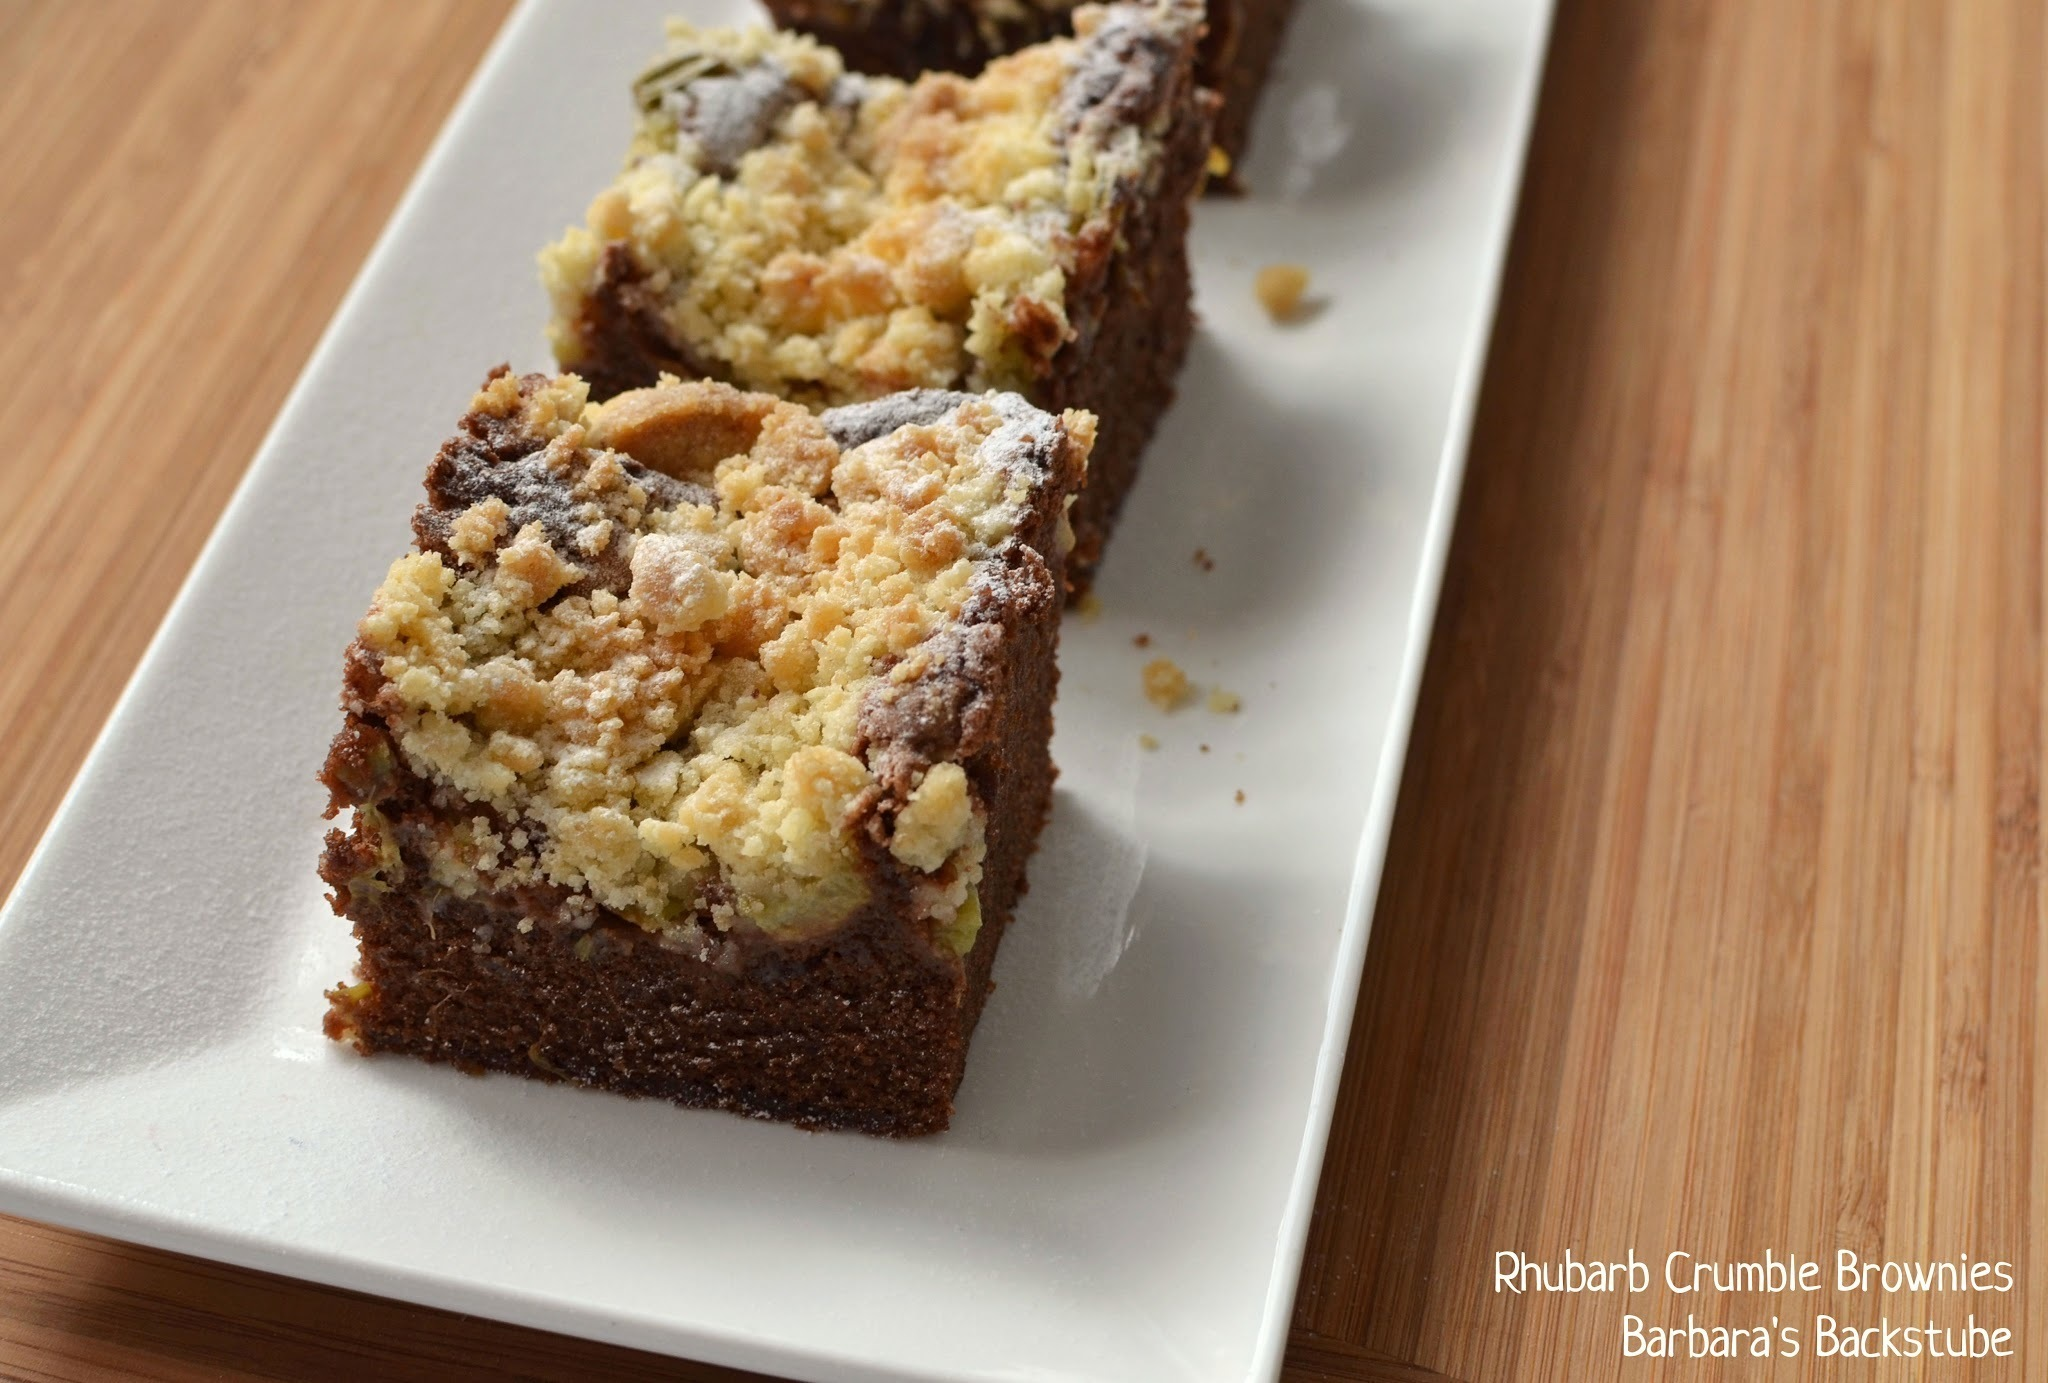 Rhubarb Crumble Brownies - Rhabarber Streusel Brownies